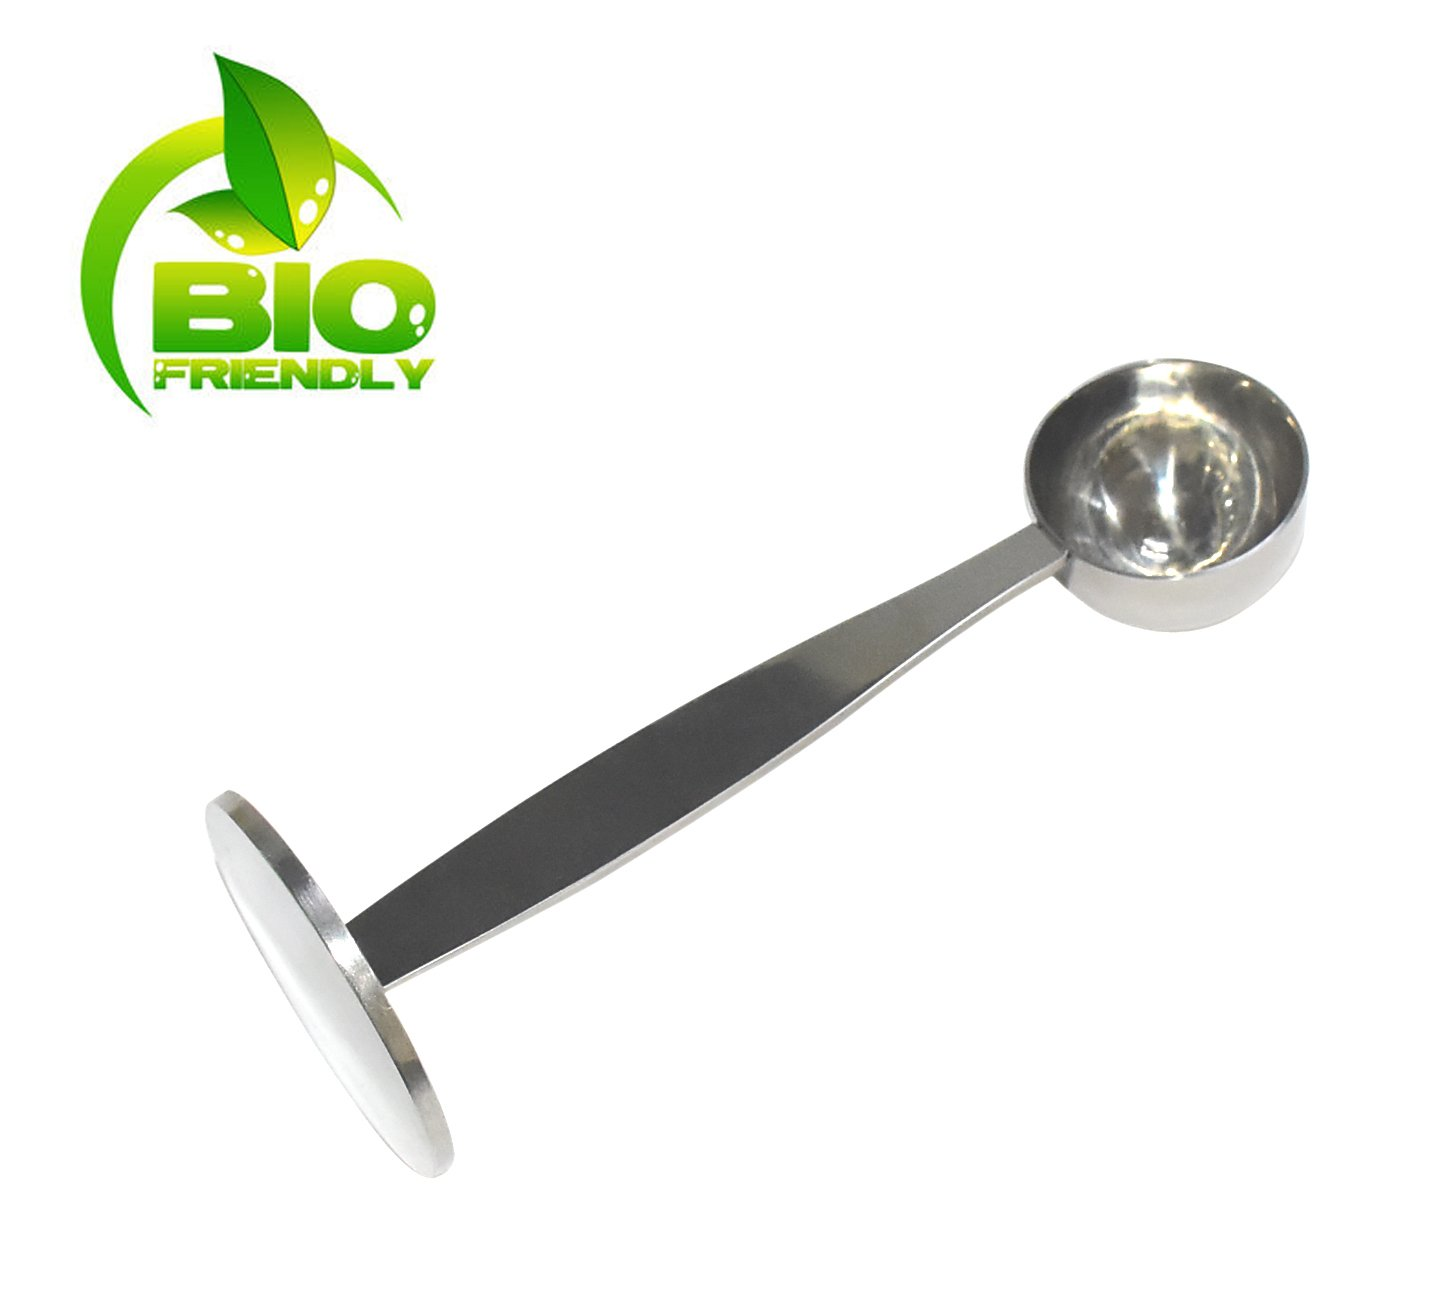 OKCafe Espresso Stand Coffee Measure Tamper Spoon Stainless Steel Coffee & Tea Tools Measuring Tamping Scoop 1 Pieces 15ml Sliever